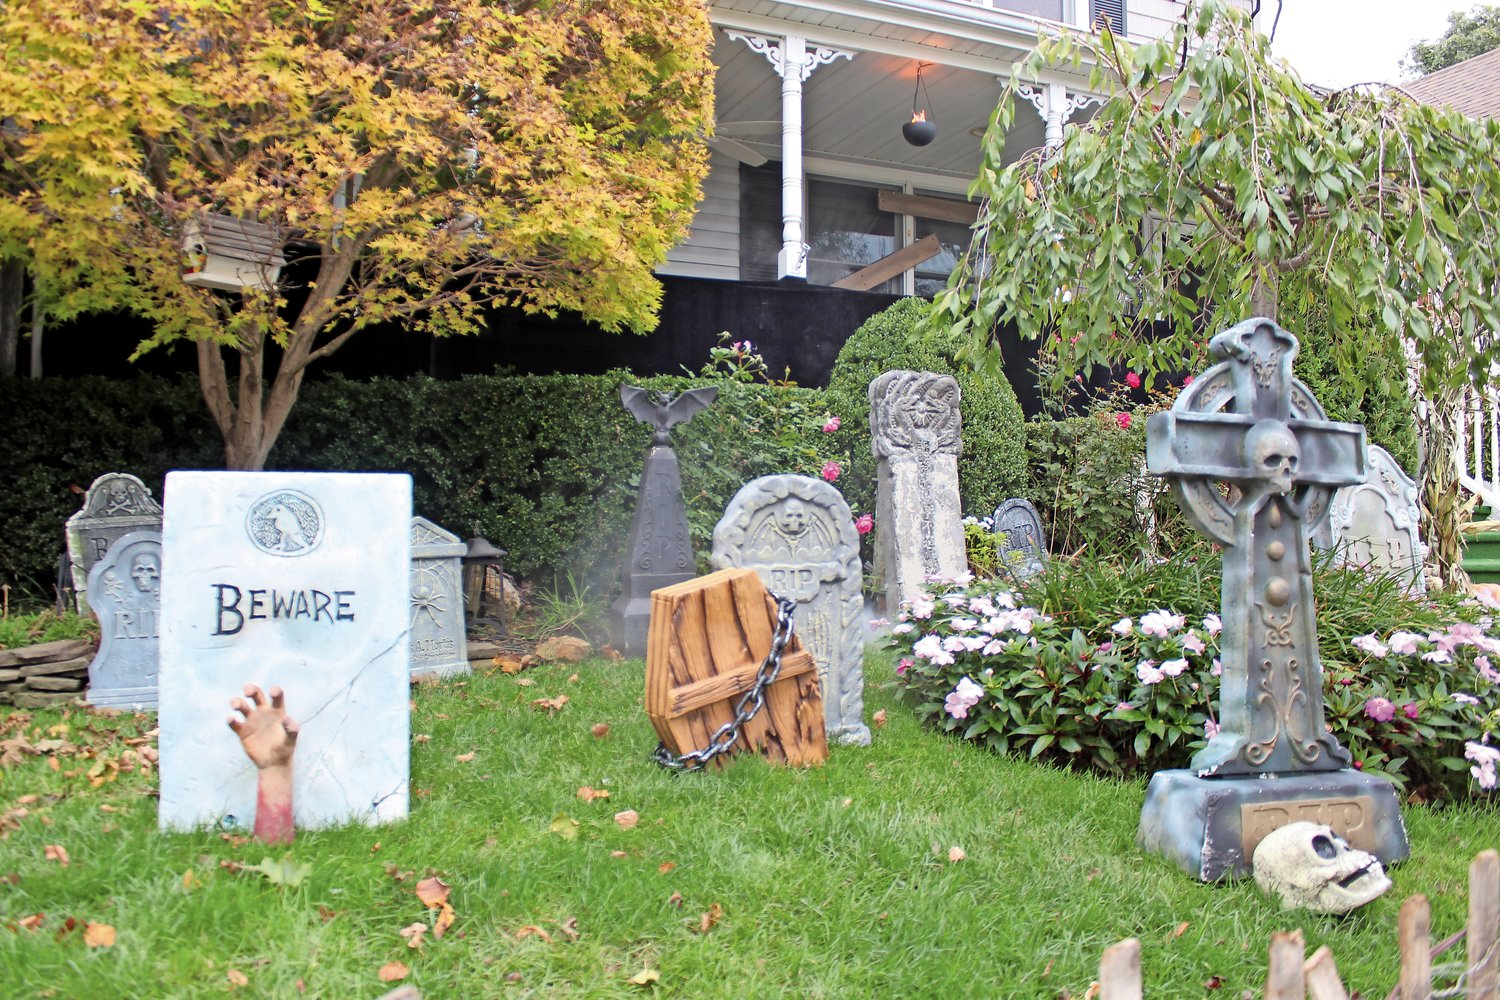 Allocco set up a fake graveyard on his front lawn in preparation for this year's Franklin Square Horror.